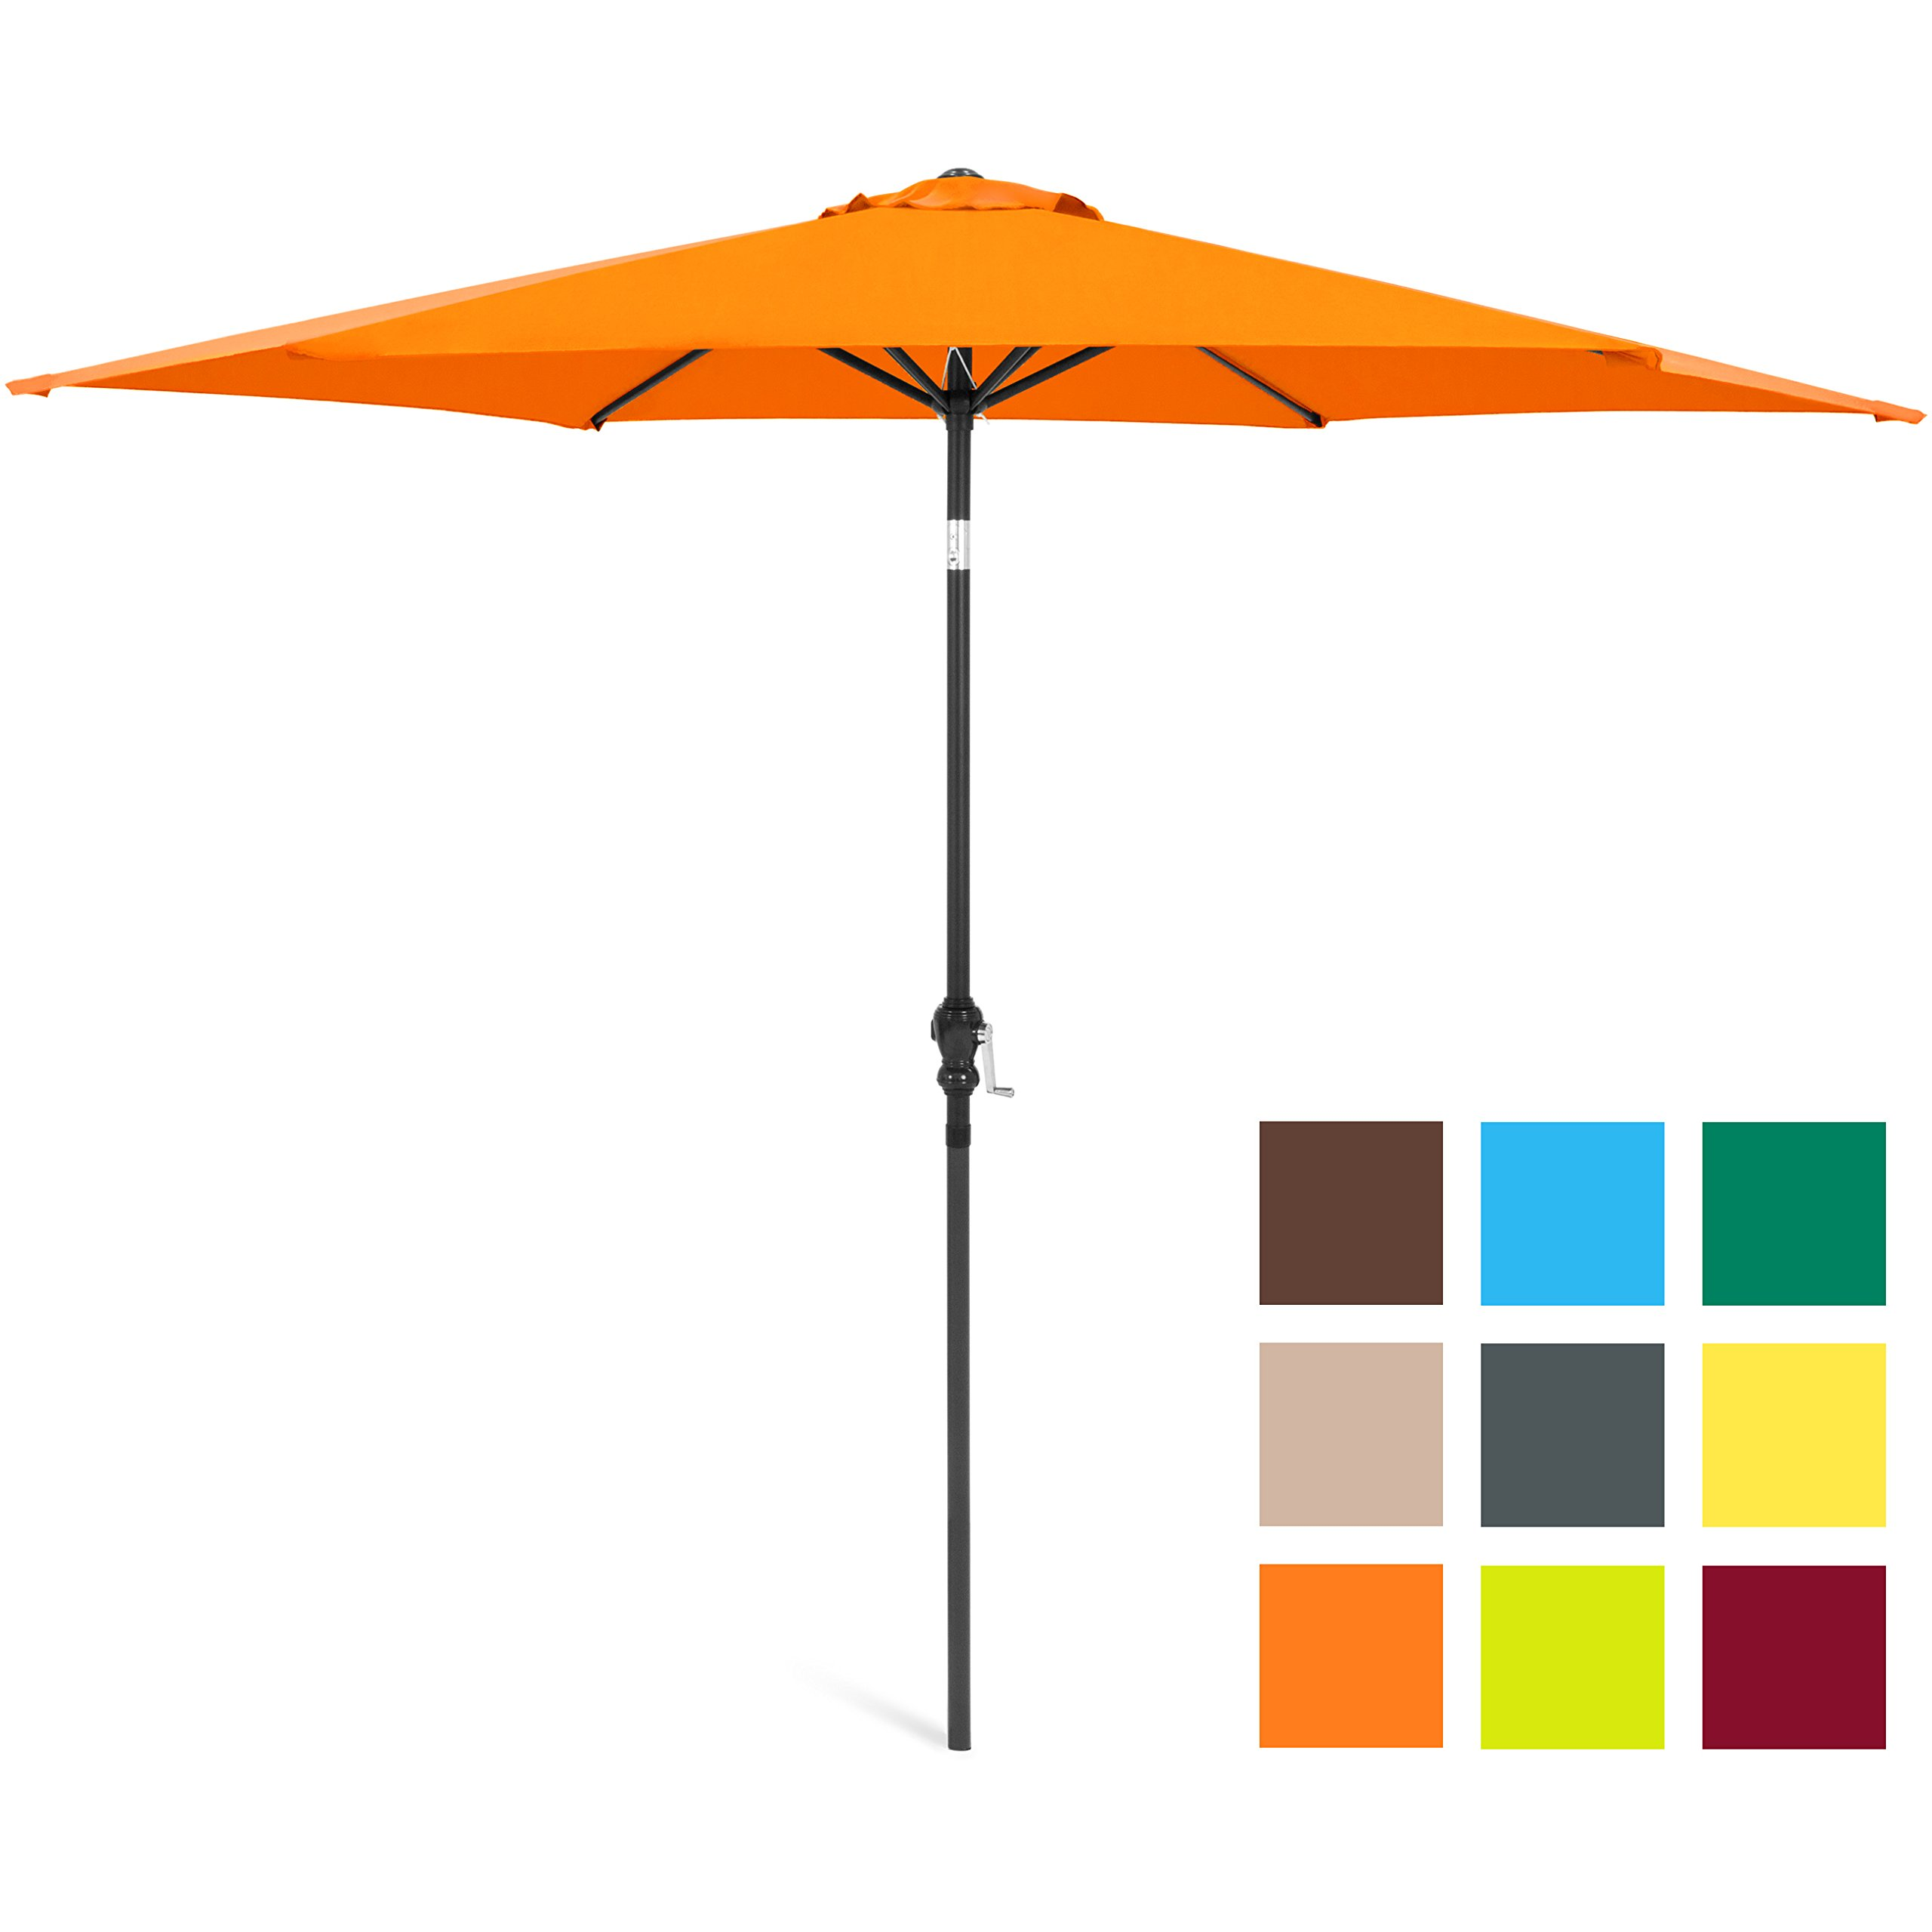 Best Choice Products 10-Foot Outdoor Table Compatible Steel Polyester Market Patio Umbrella w/Crank and Easy Push Button Tilt, Orange by Best Choice Products